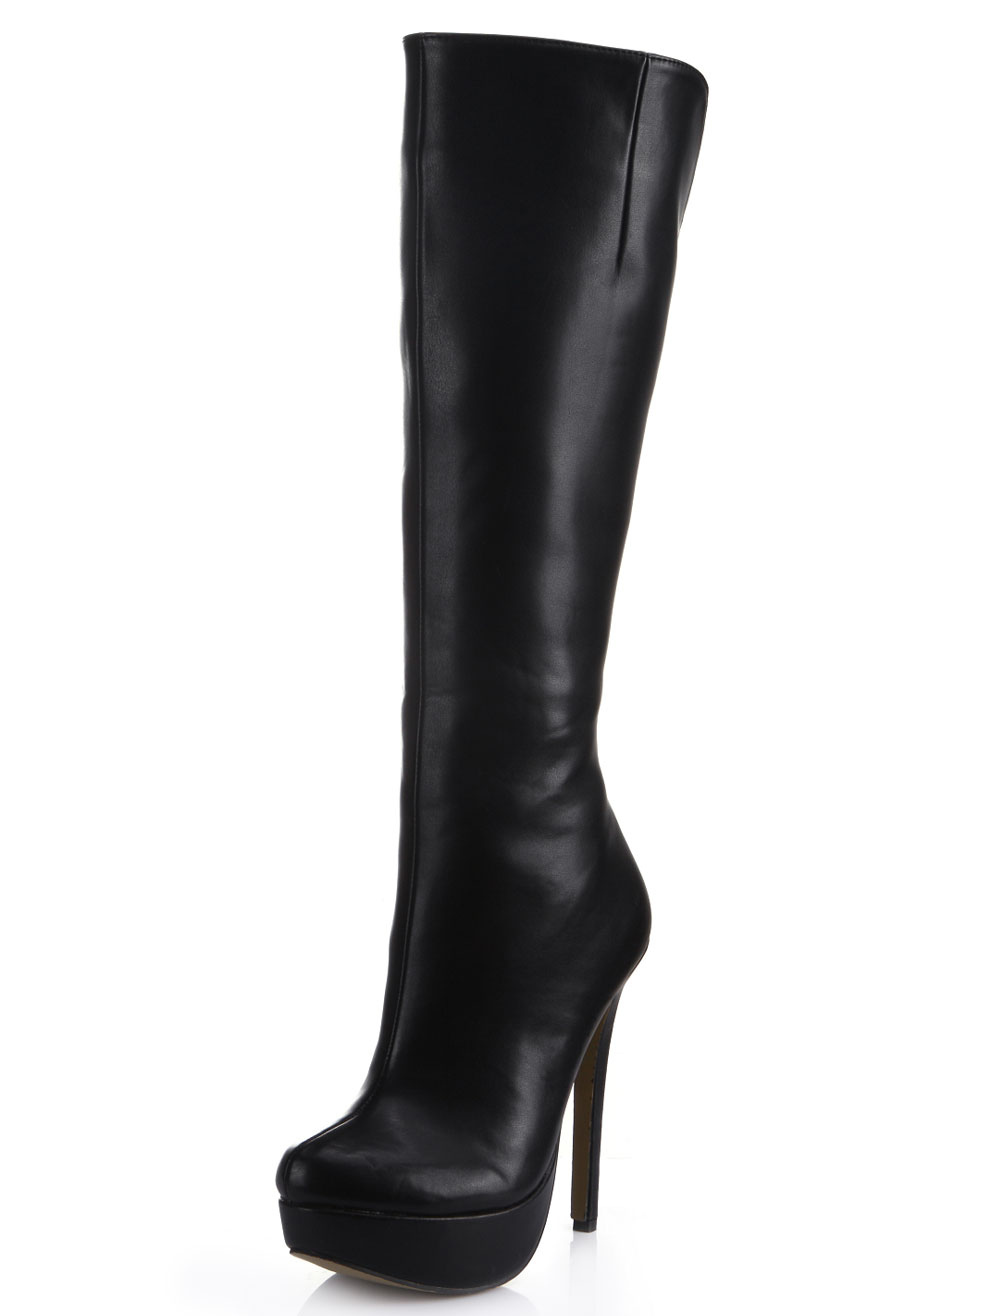 Charming Black Almond Toe Stiletto Heel PU Leather Women's Knee Length Boots